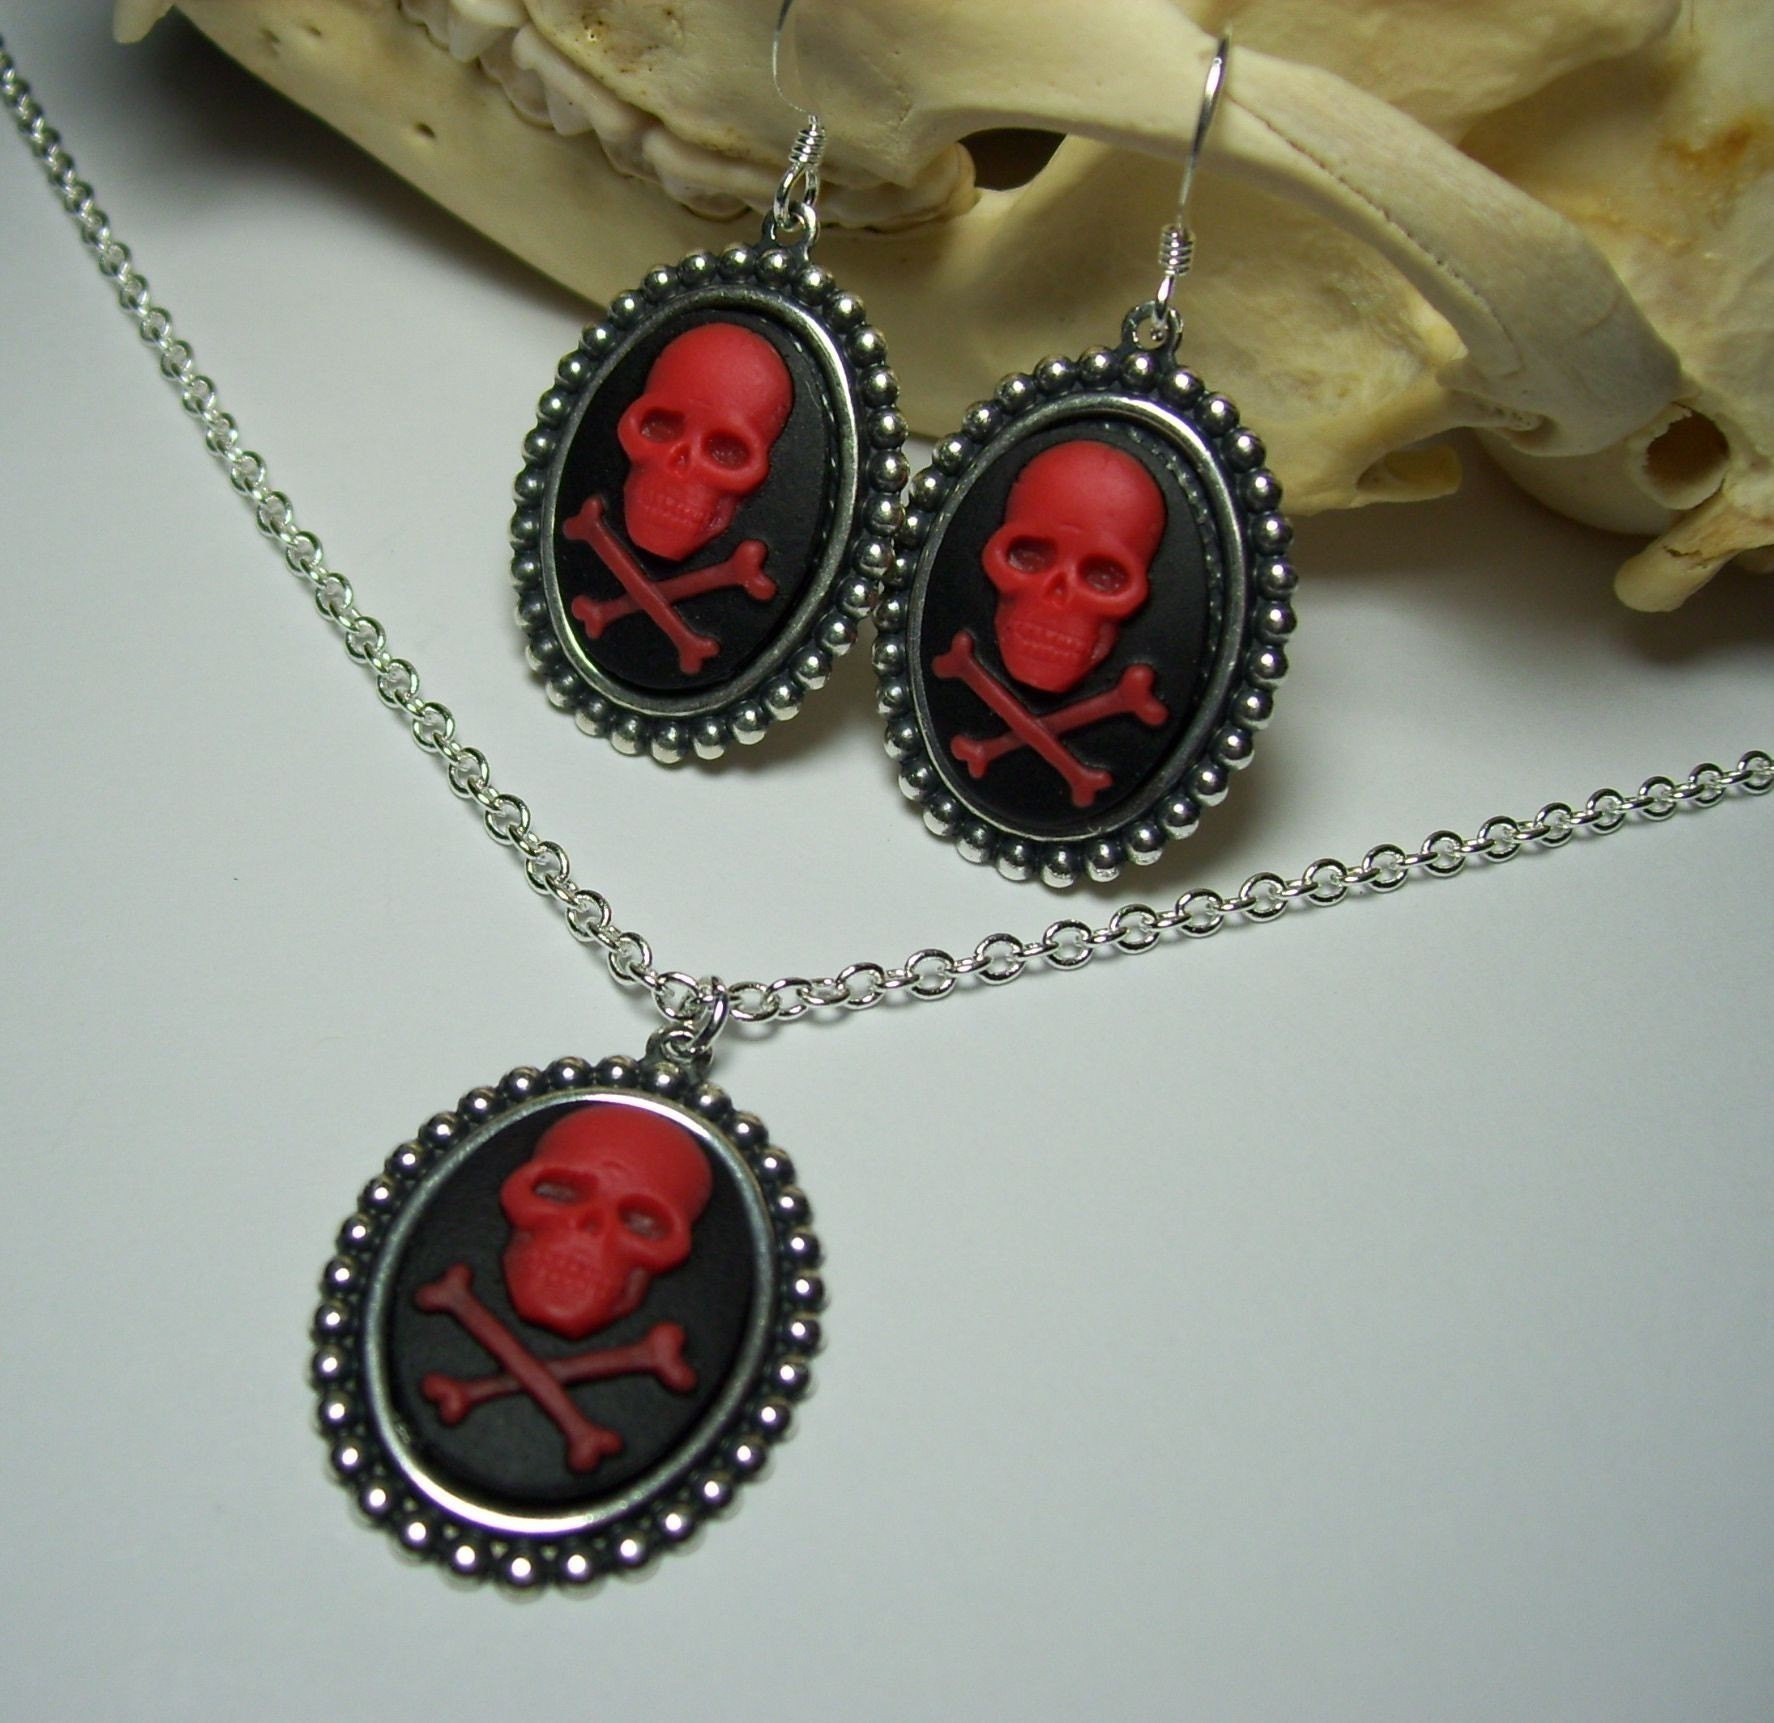 Antique Silver Red on Black Skull and Cross Bones Cameo Gothic Pendant Necklace and Earrings Set